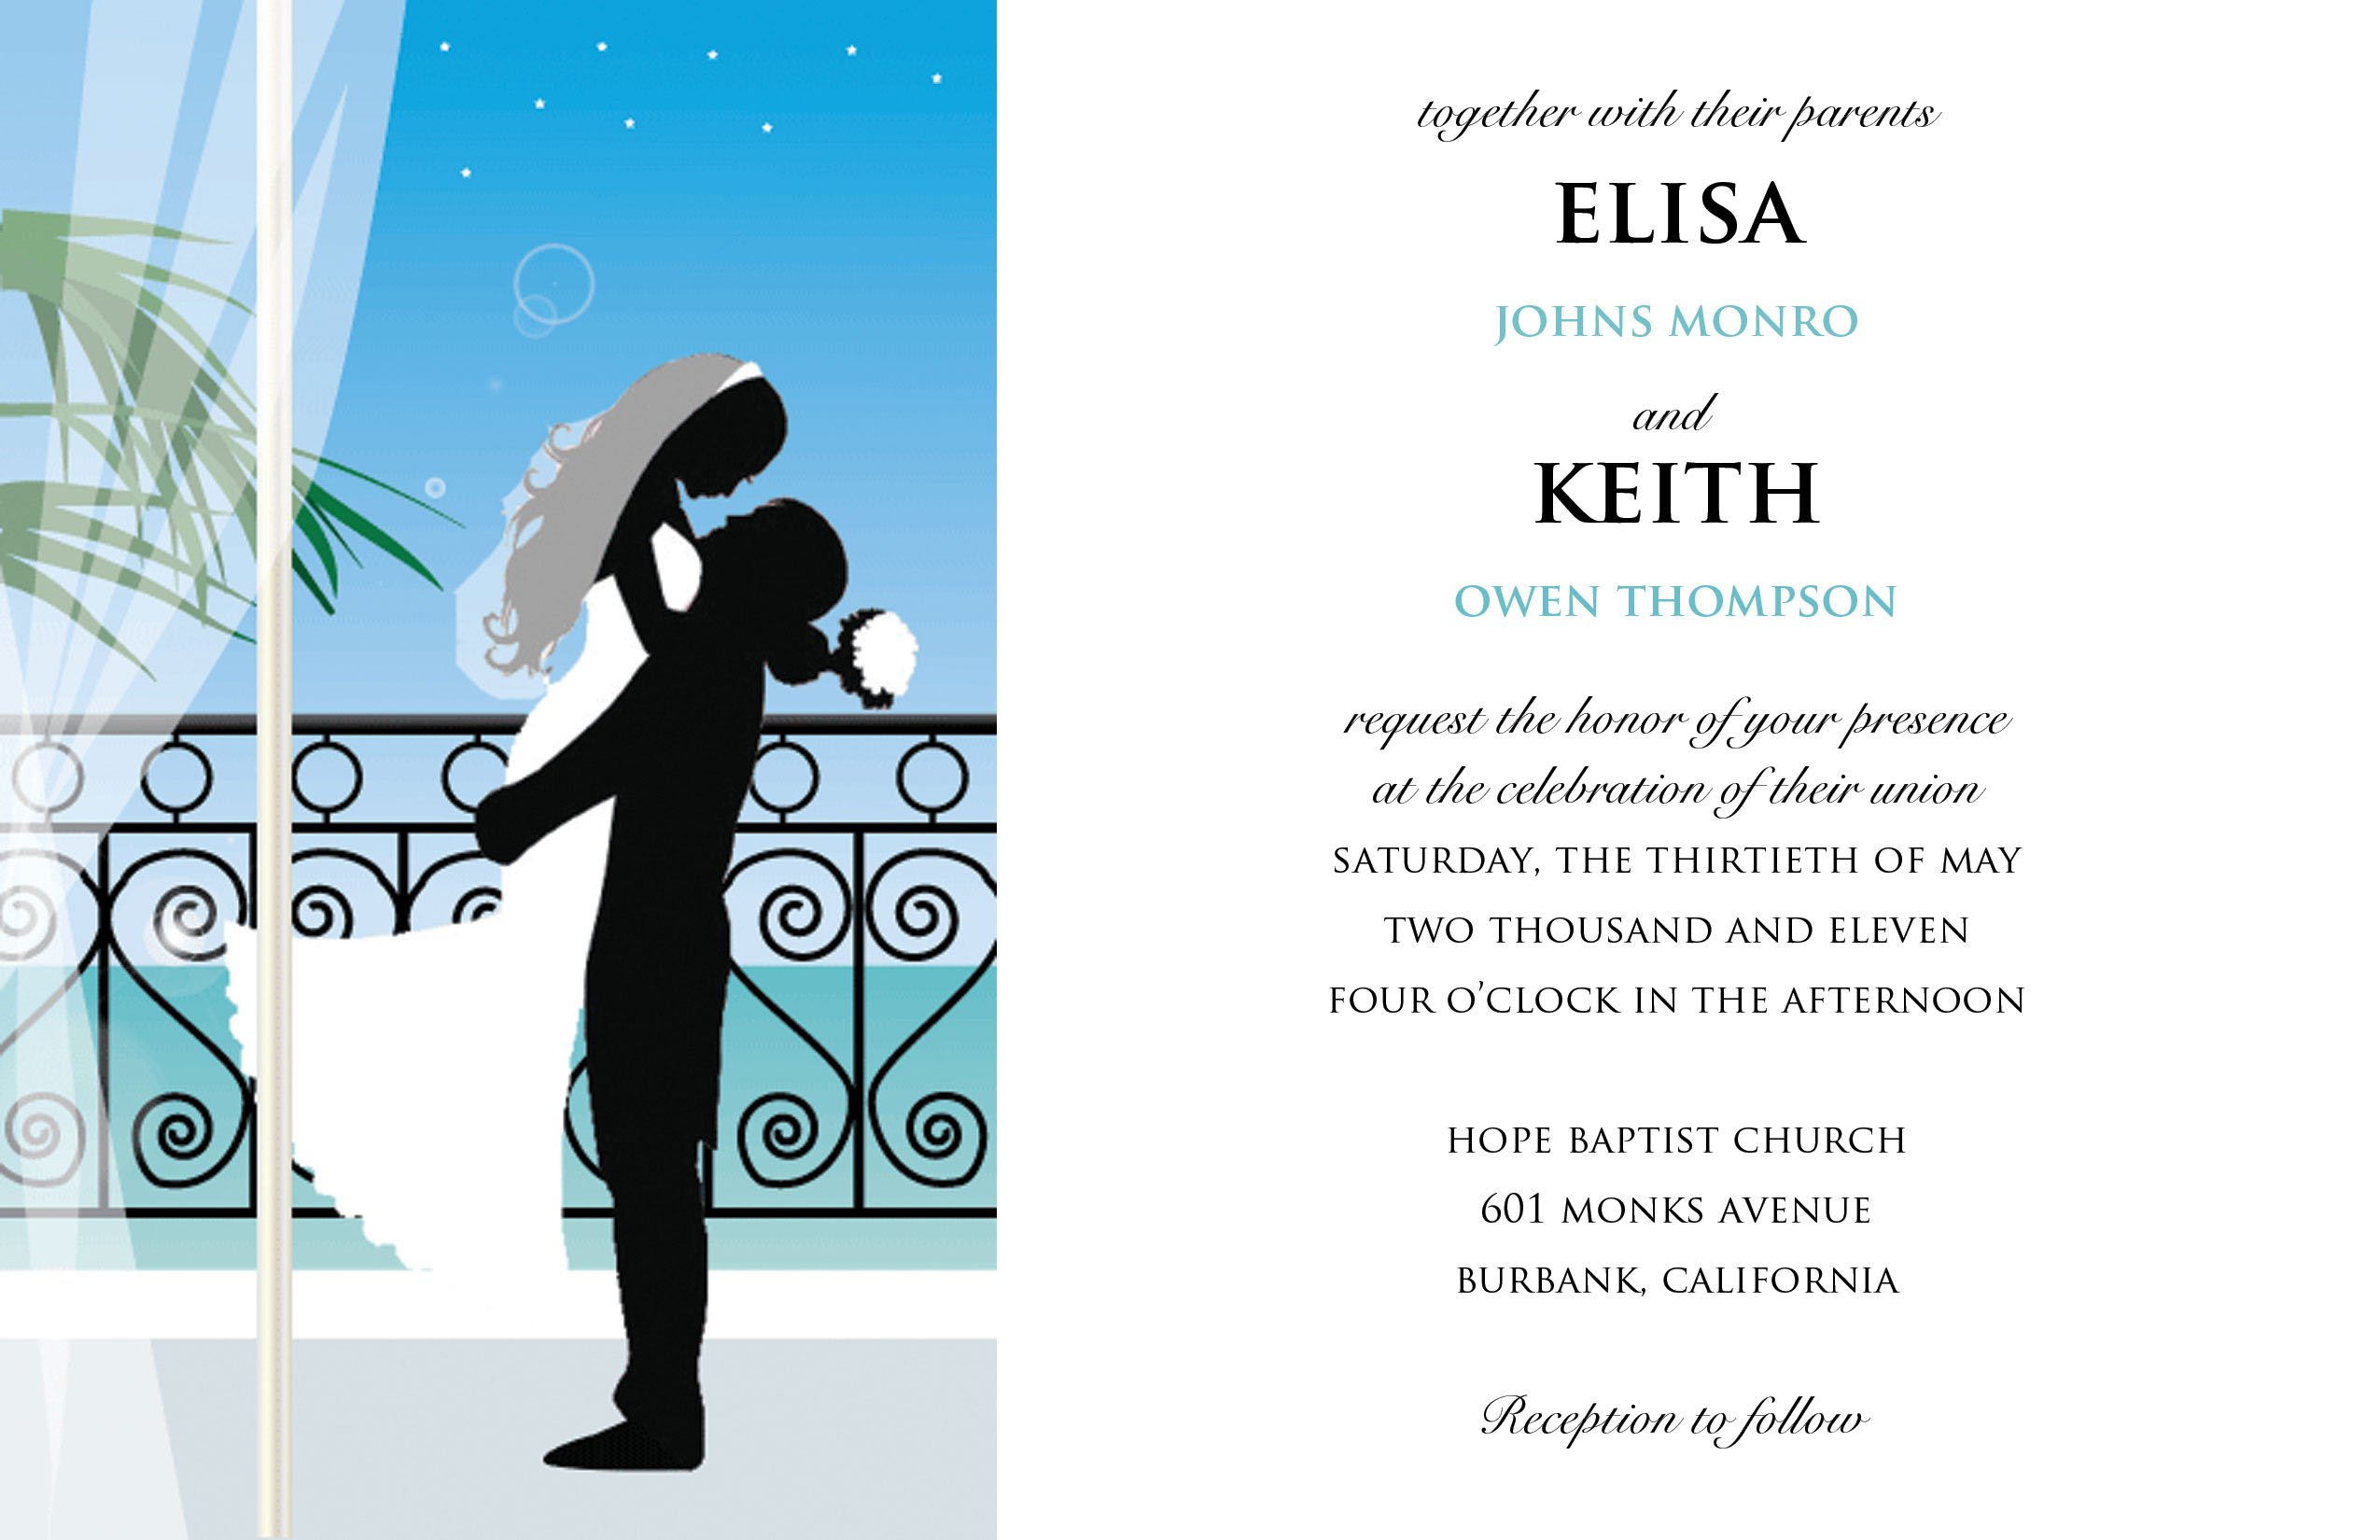 Invitation Card Design Samples